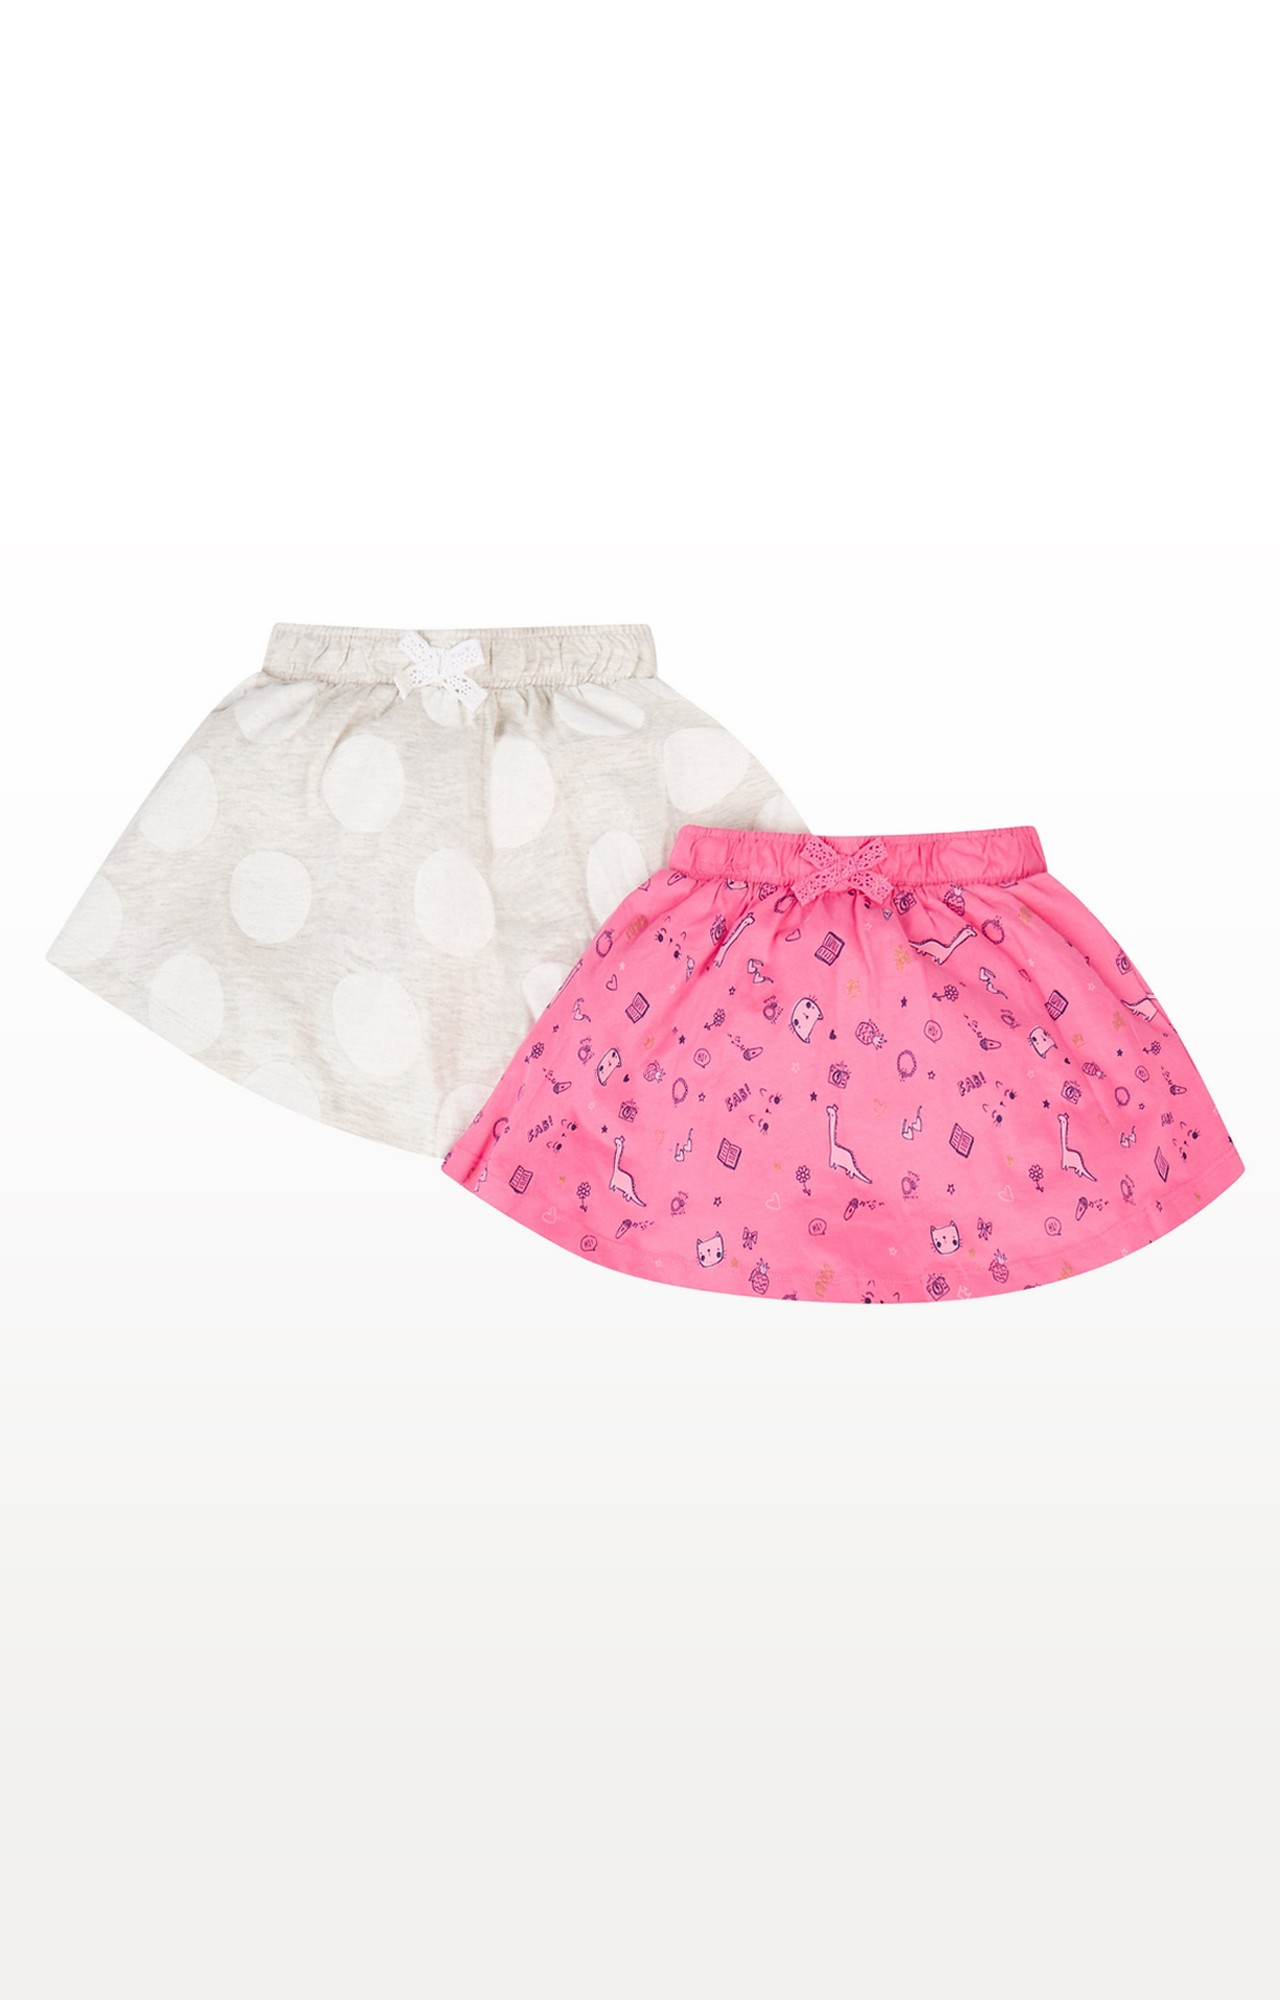 Mothercare | White and Pink Printed Skirt - Pack of 2